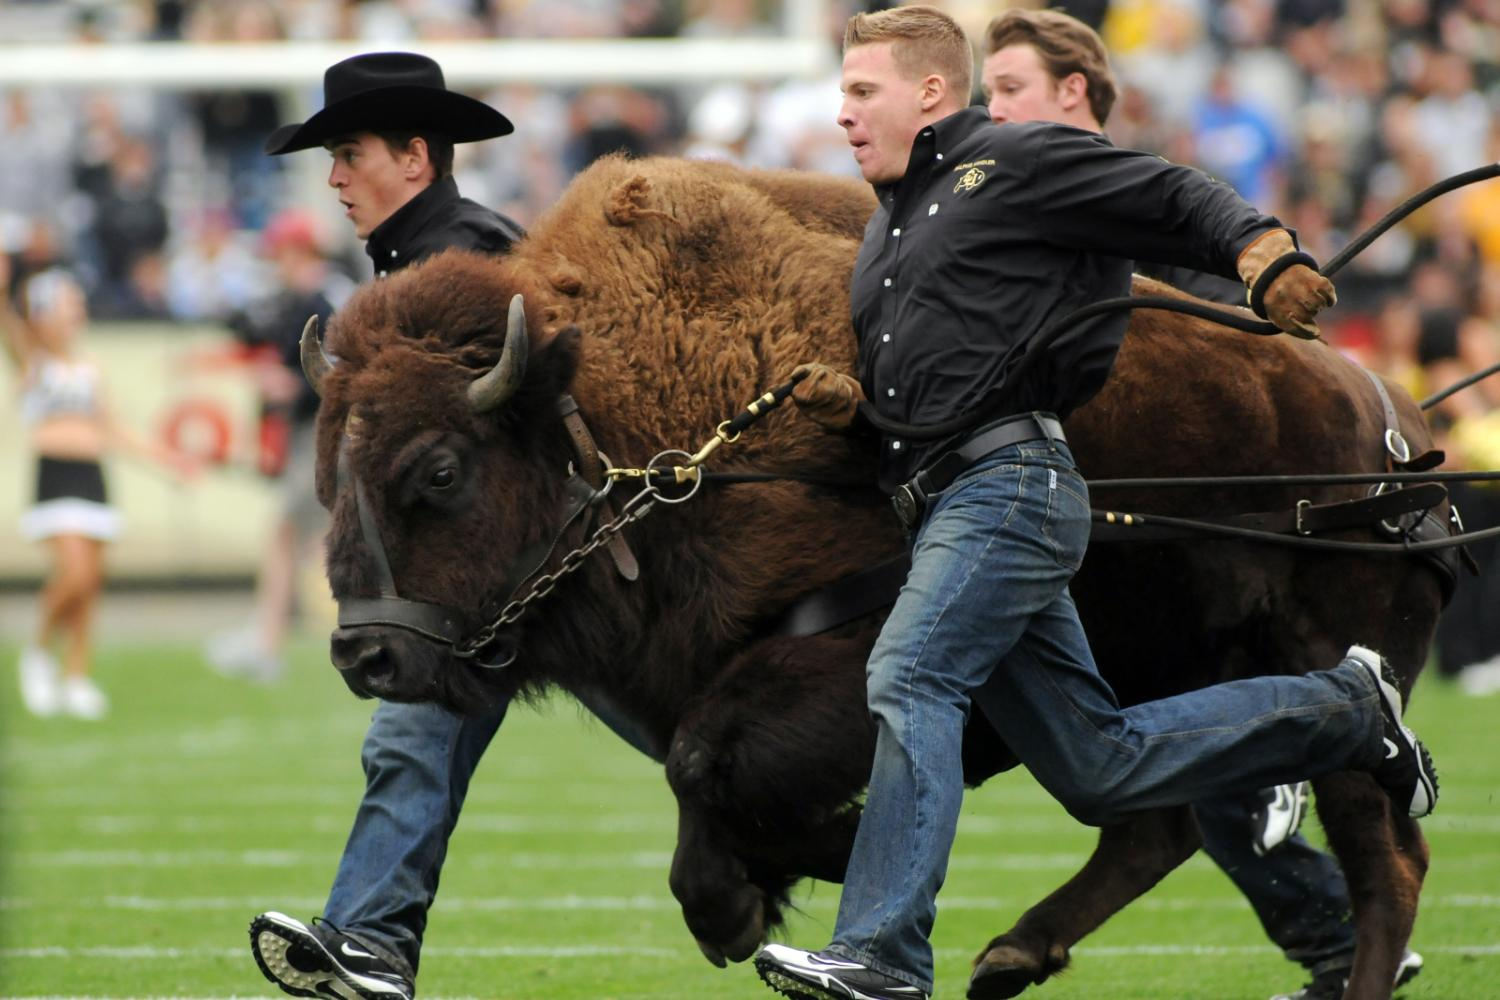 ralphie running at a cu football game